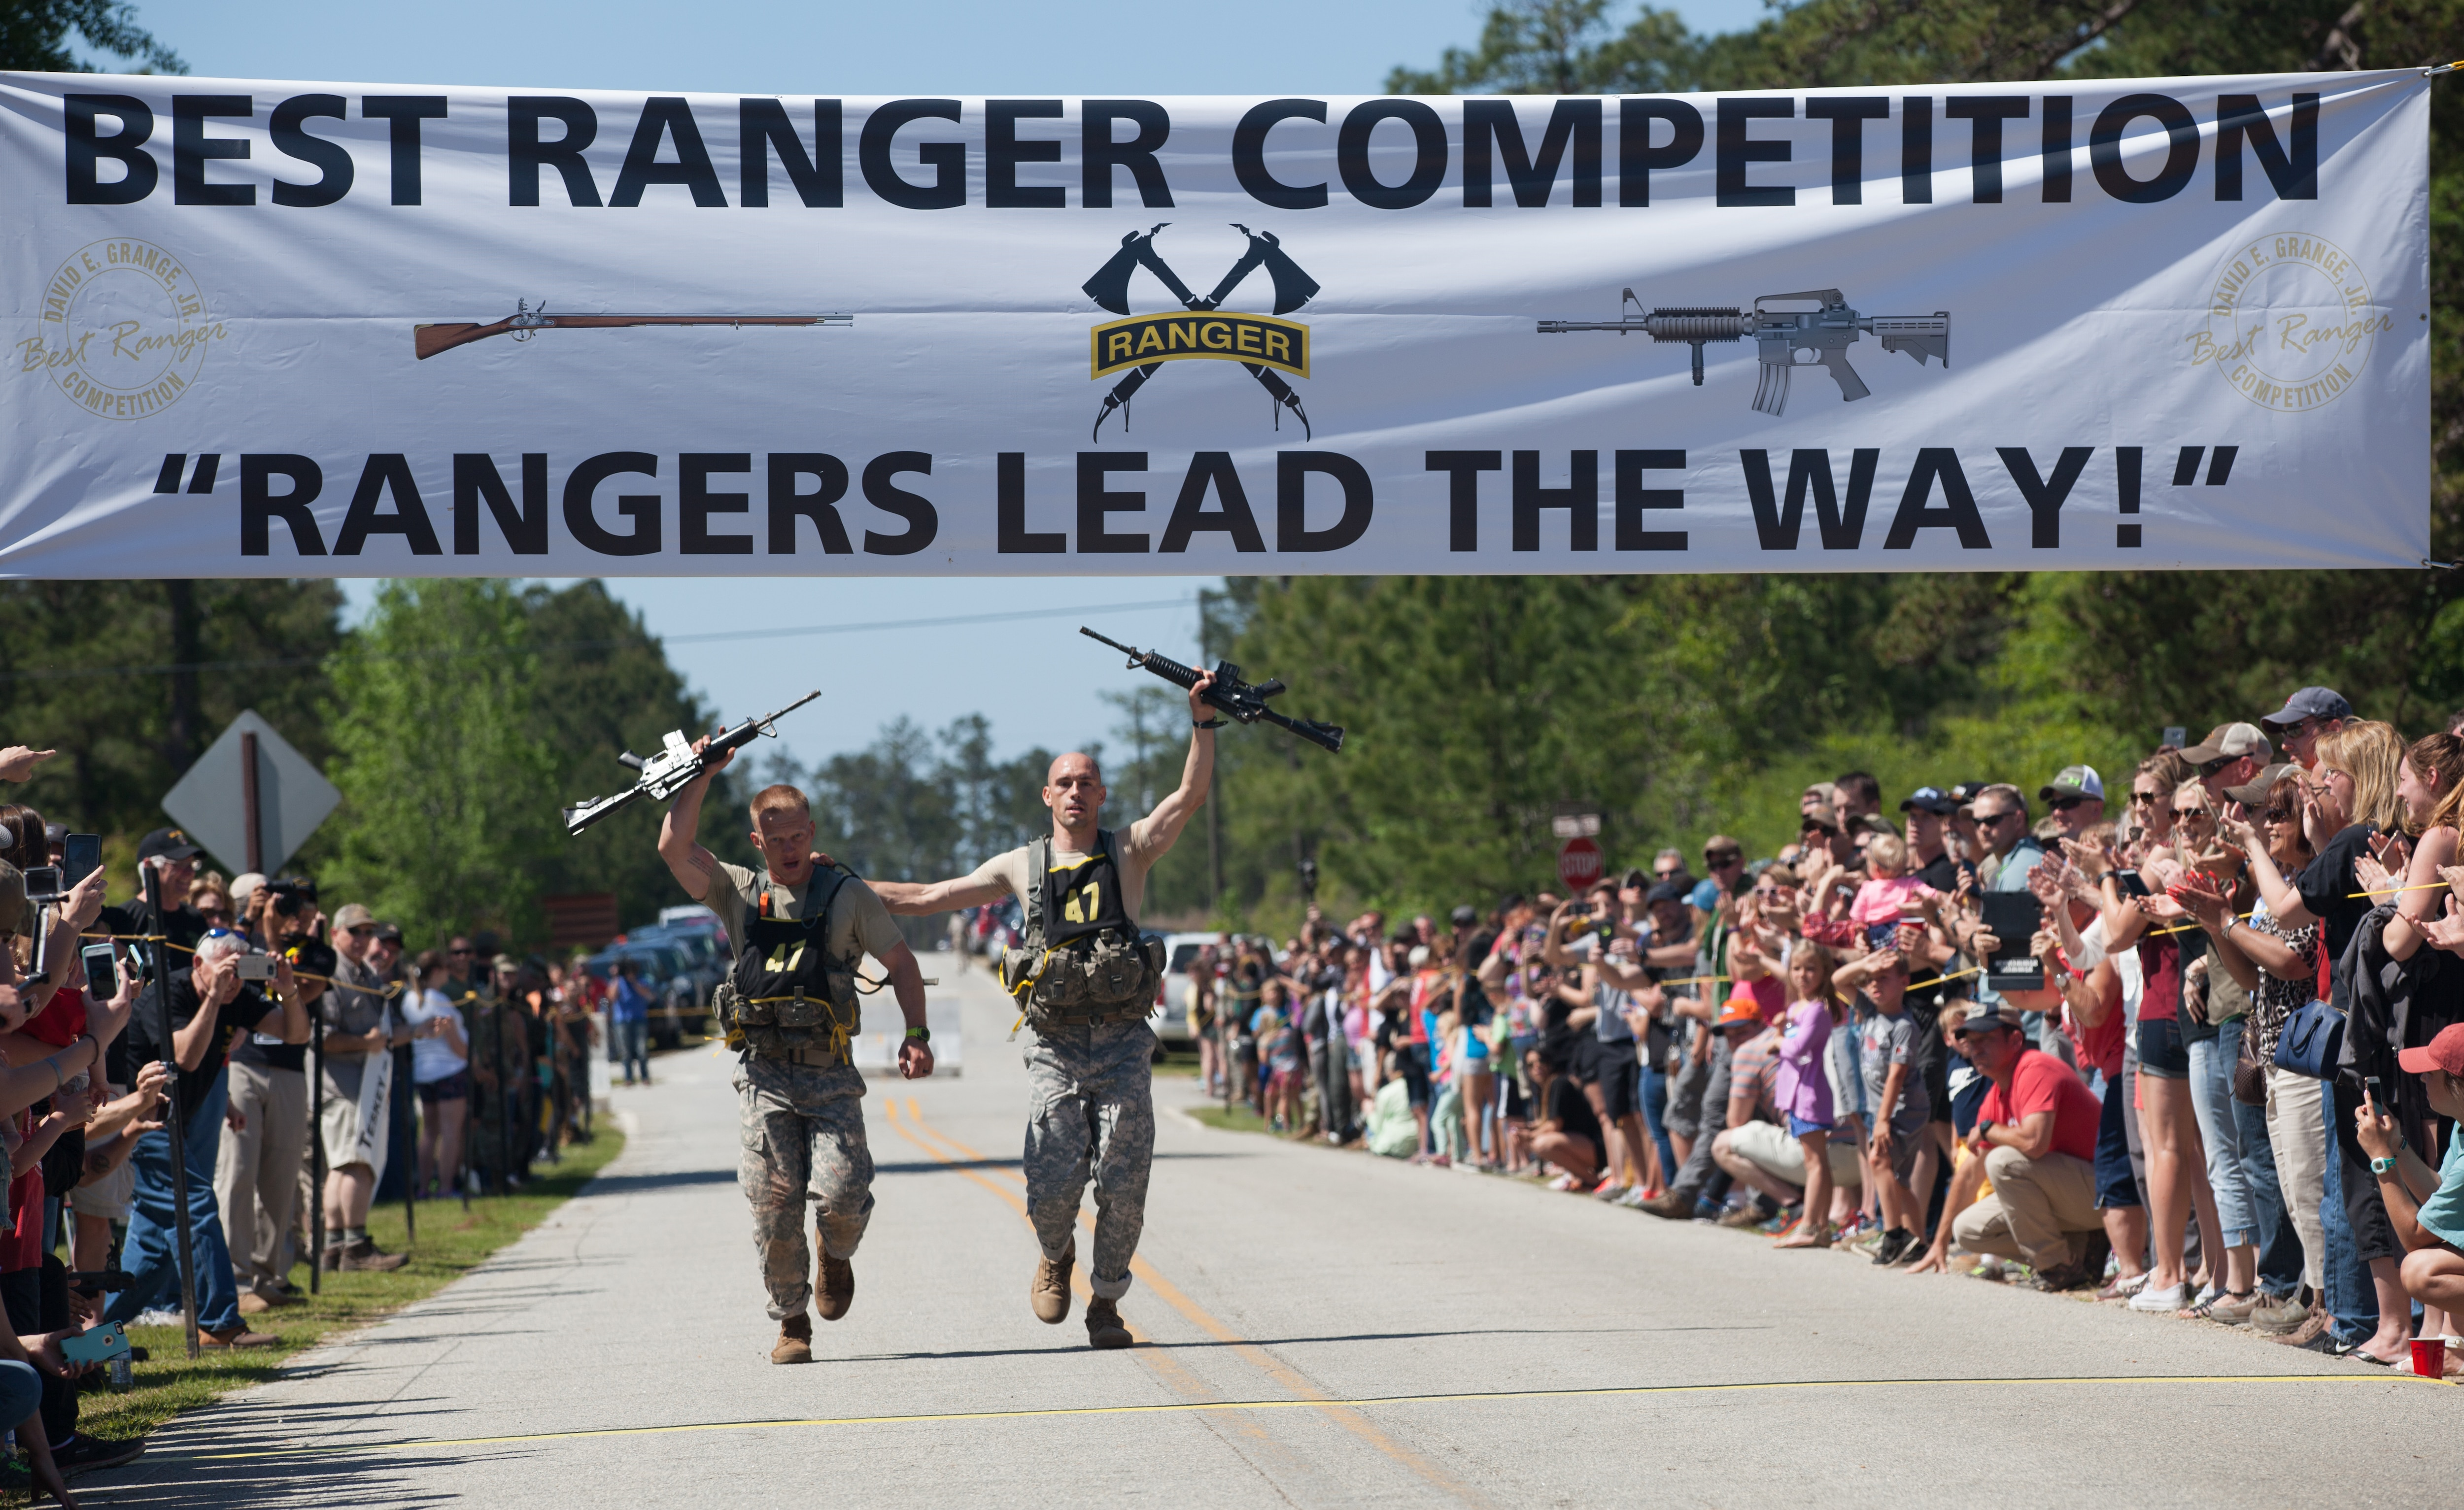 Best Ranger competition kicks off with first Coastie, Army Cyber teams